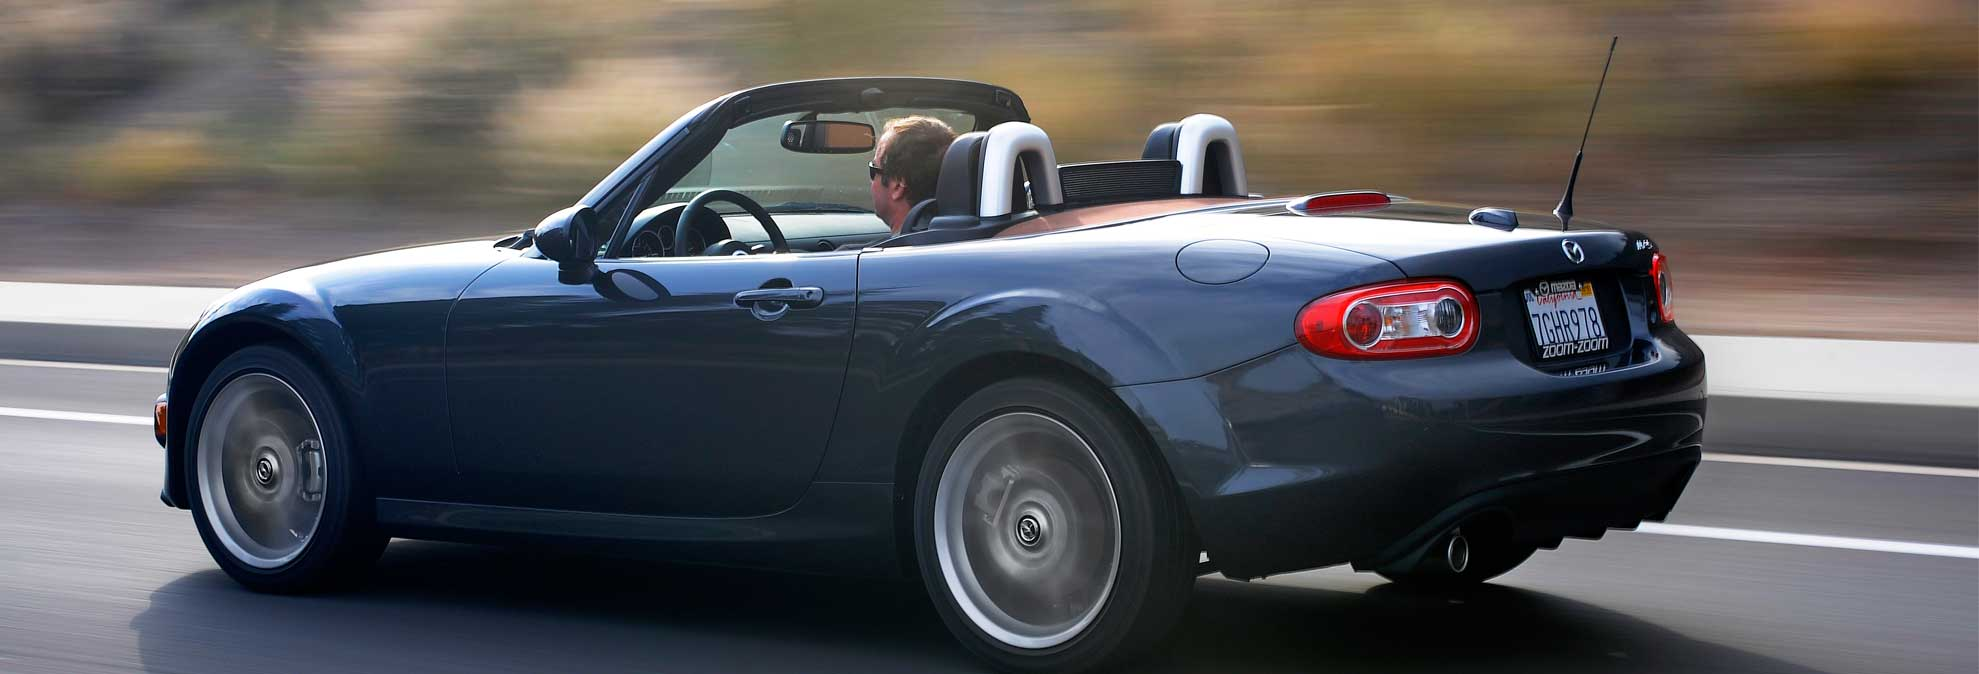 Best Convertible Buying Guide - Consumer Reports